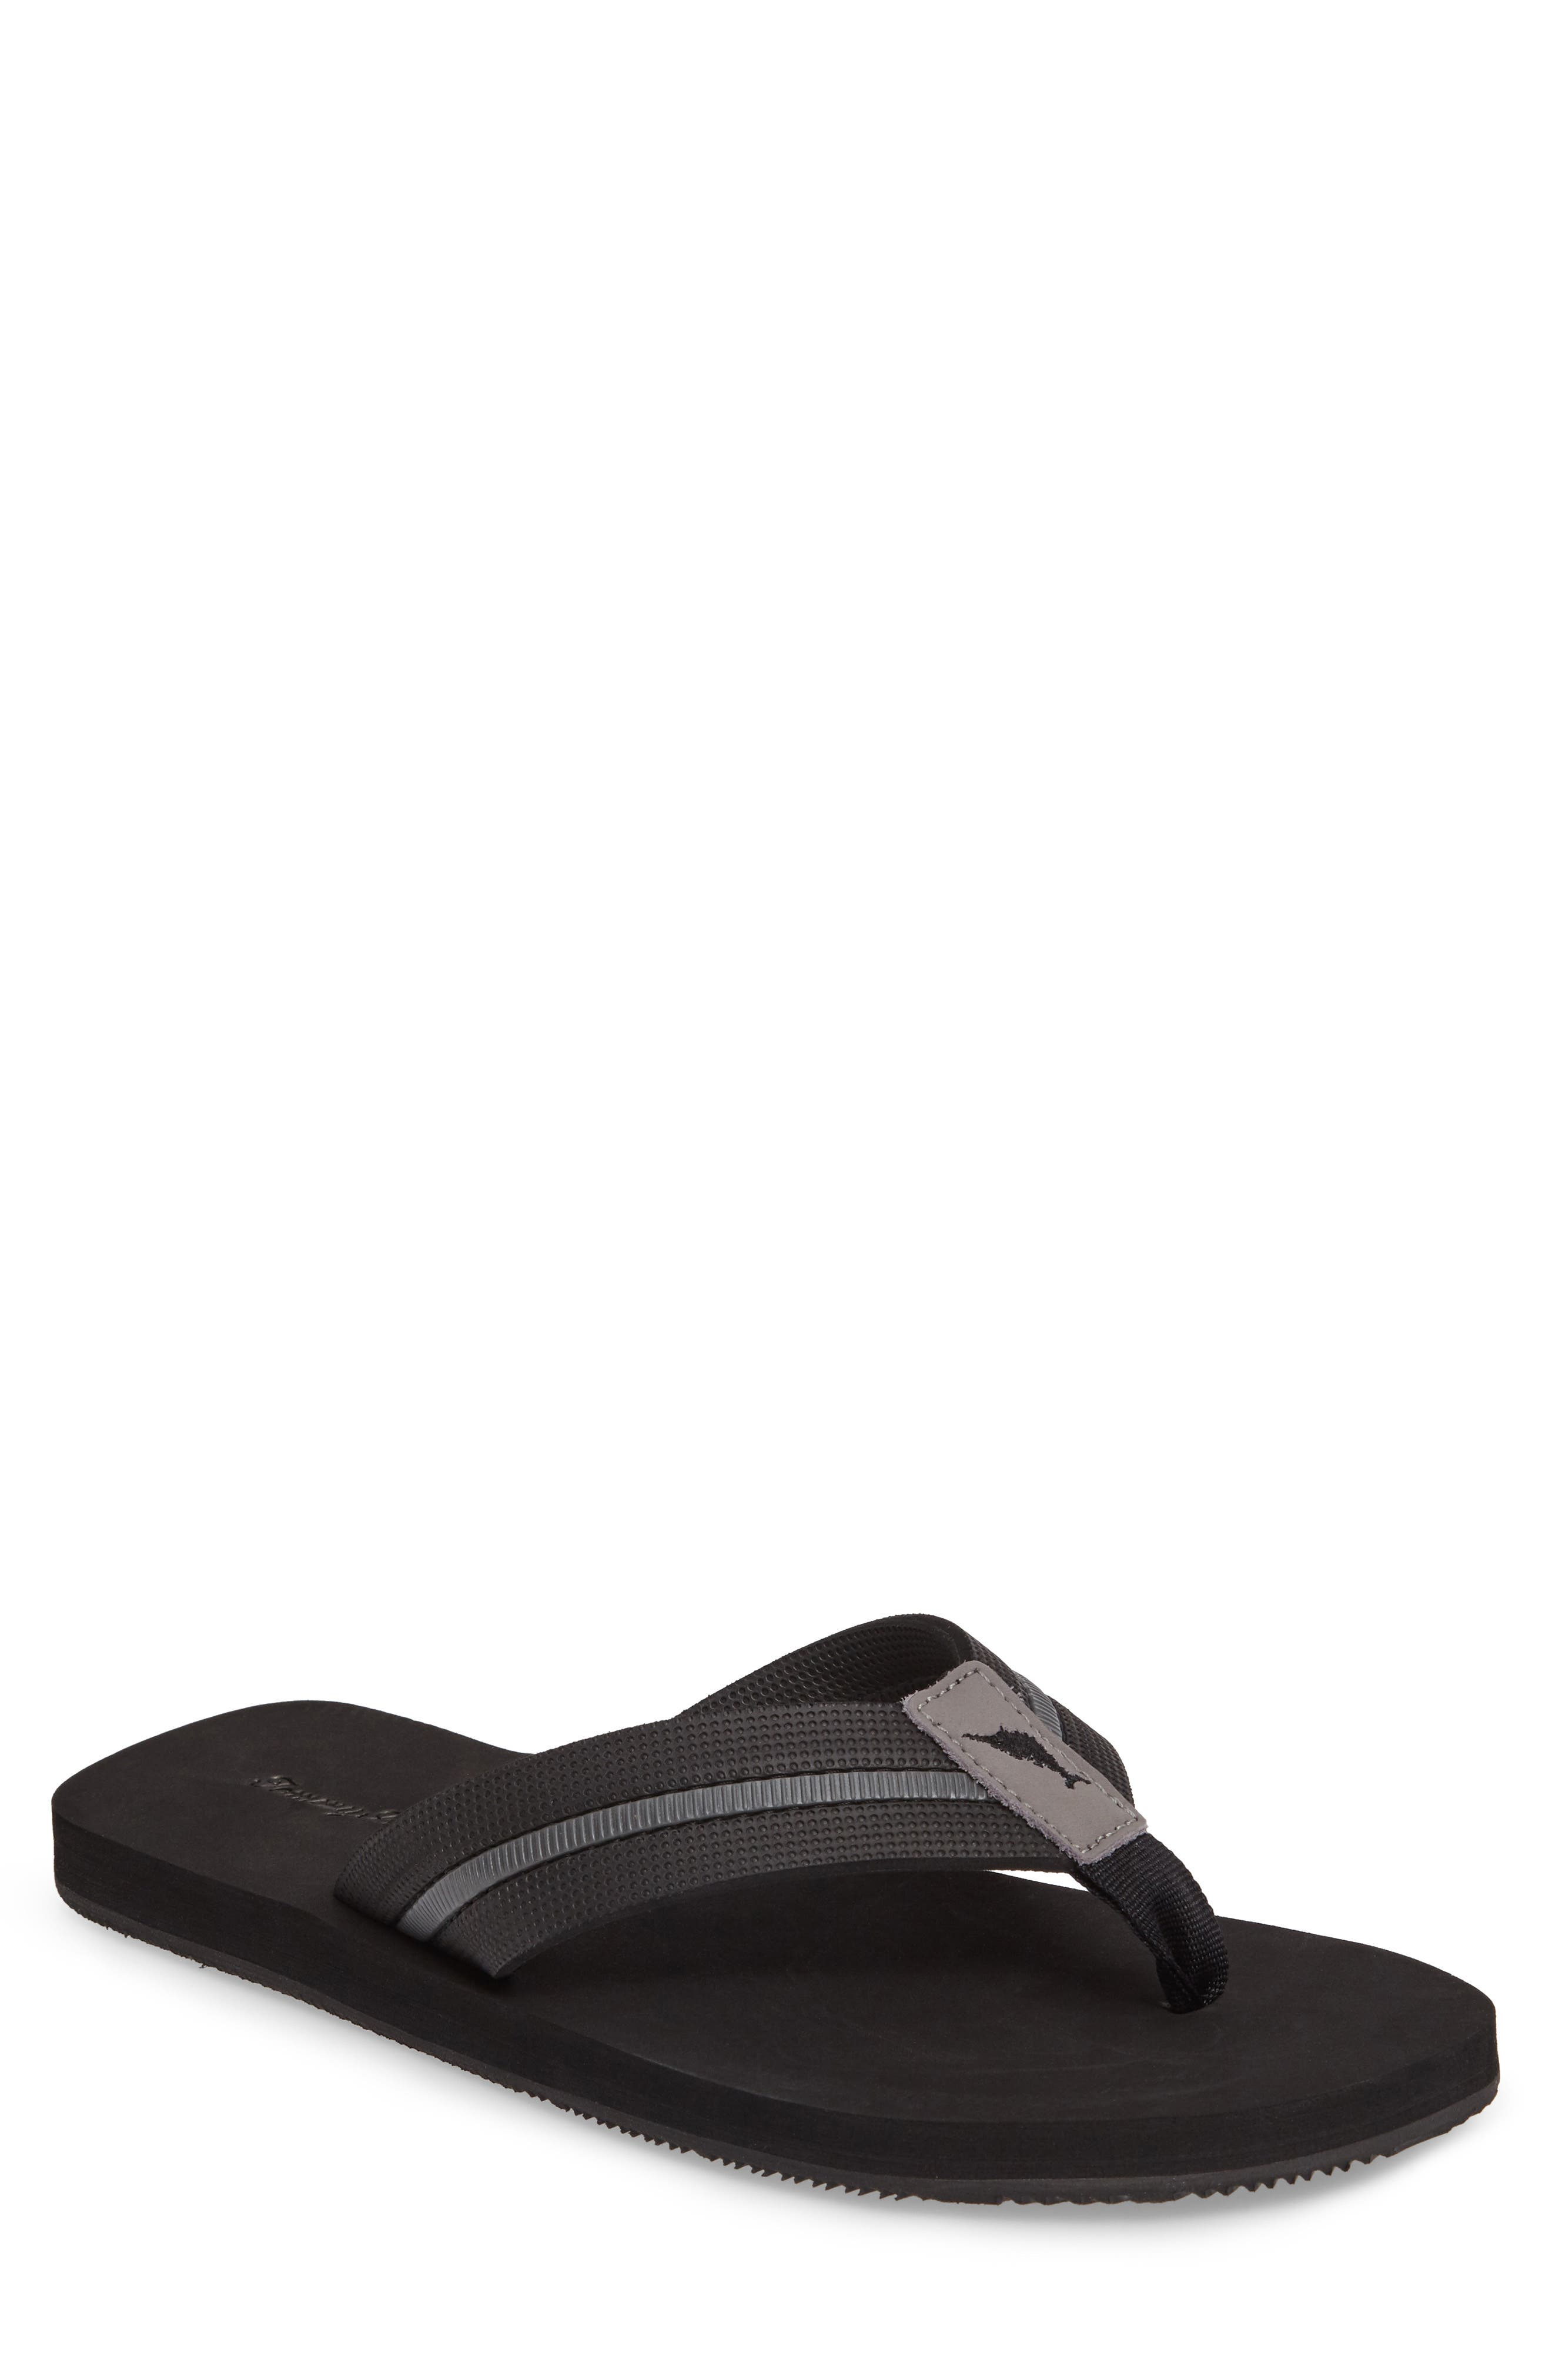 Taheeti Flip Flop,                         Main,                         color, BLACK